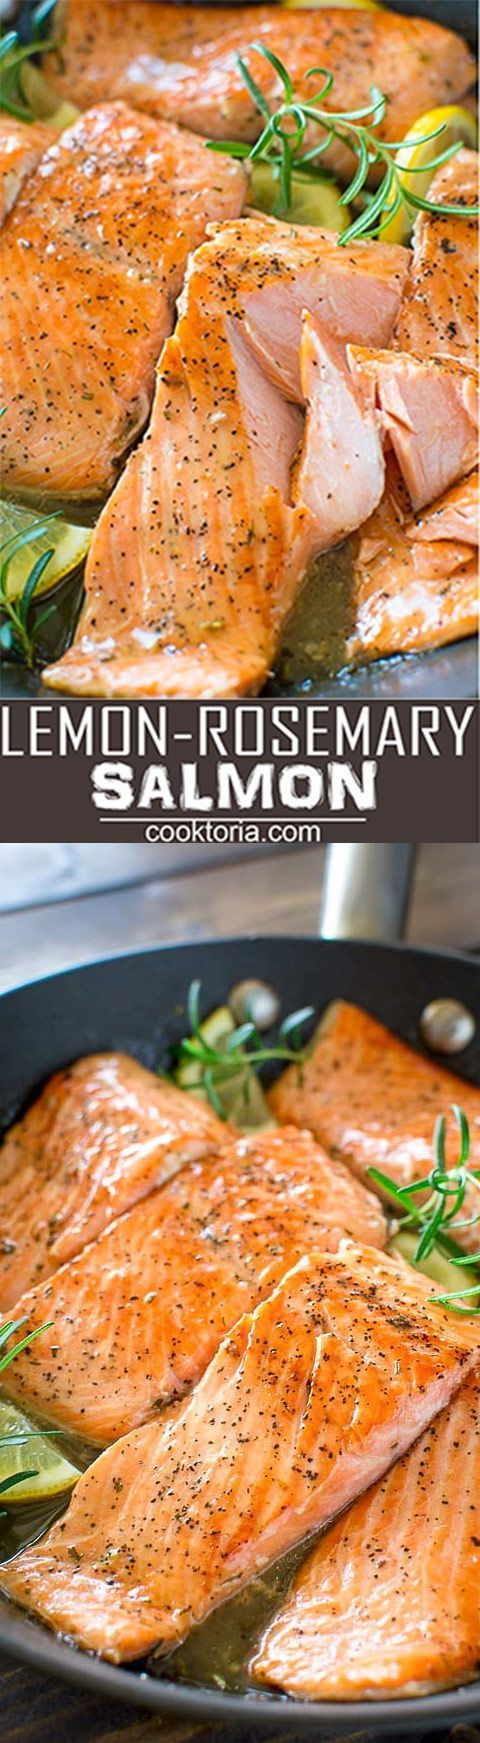 lemon rosemary salmon                                                                                                                                                                                 More